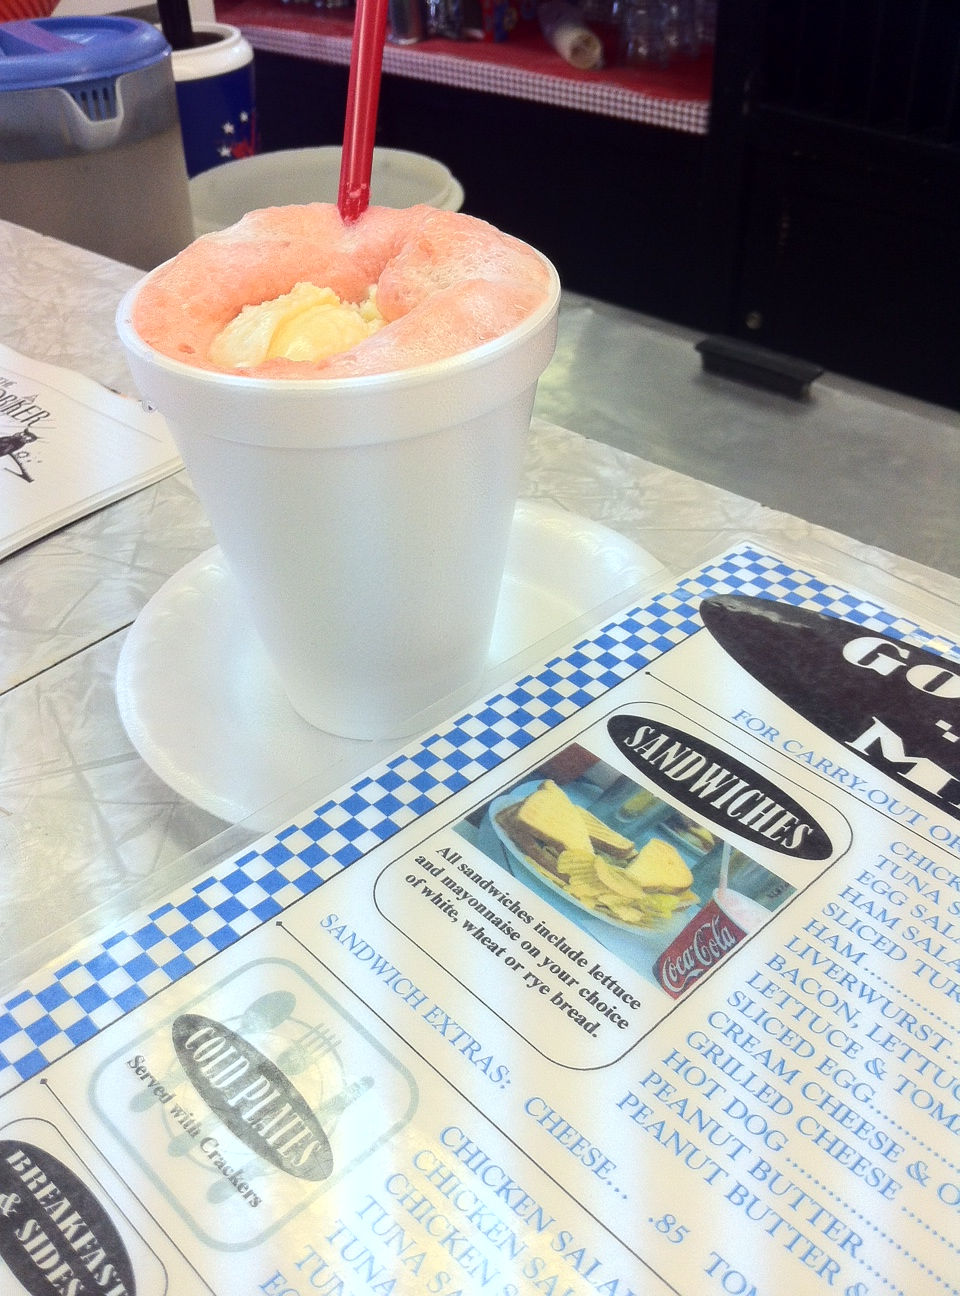 A strawberry soda (strawberry syrup, soda water and vanilla ice cream) from Goolrick's